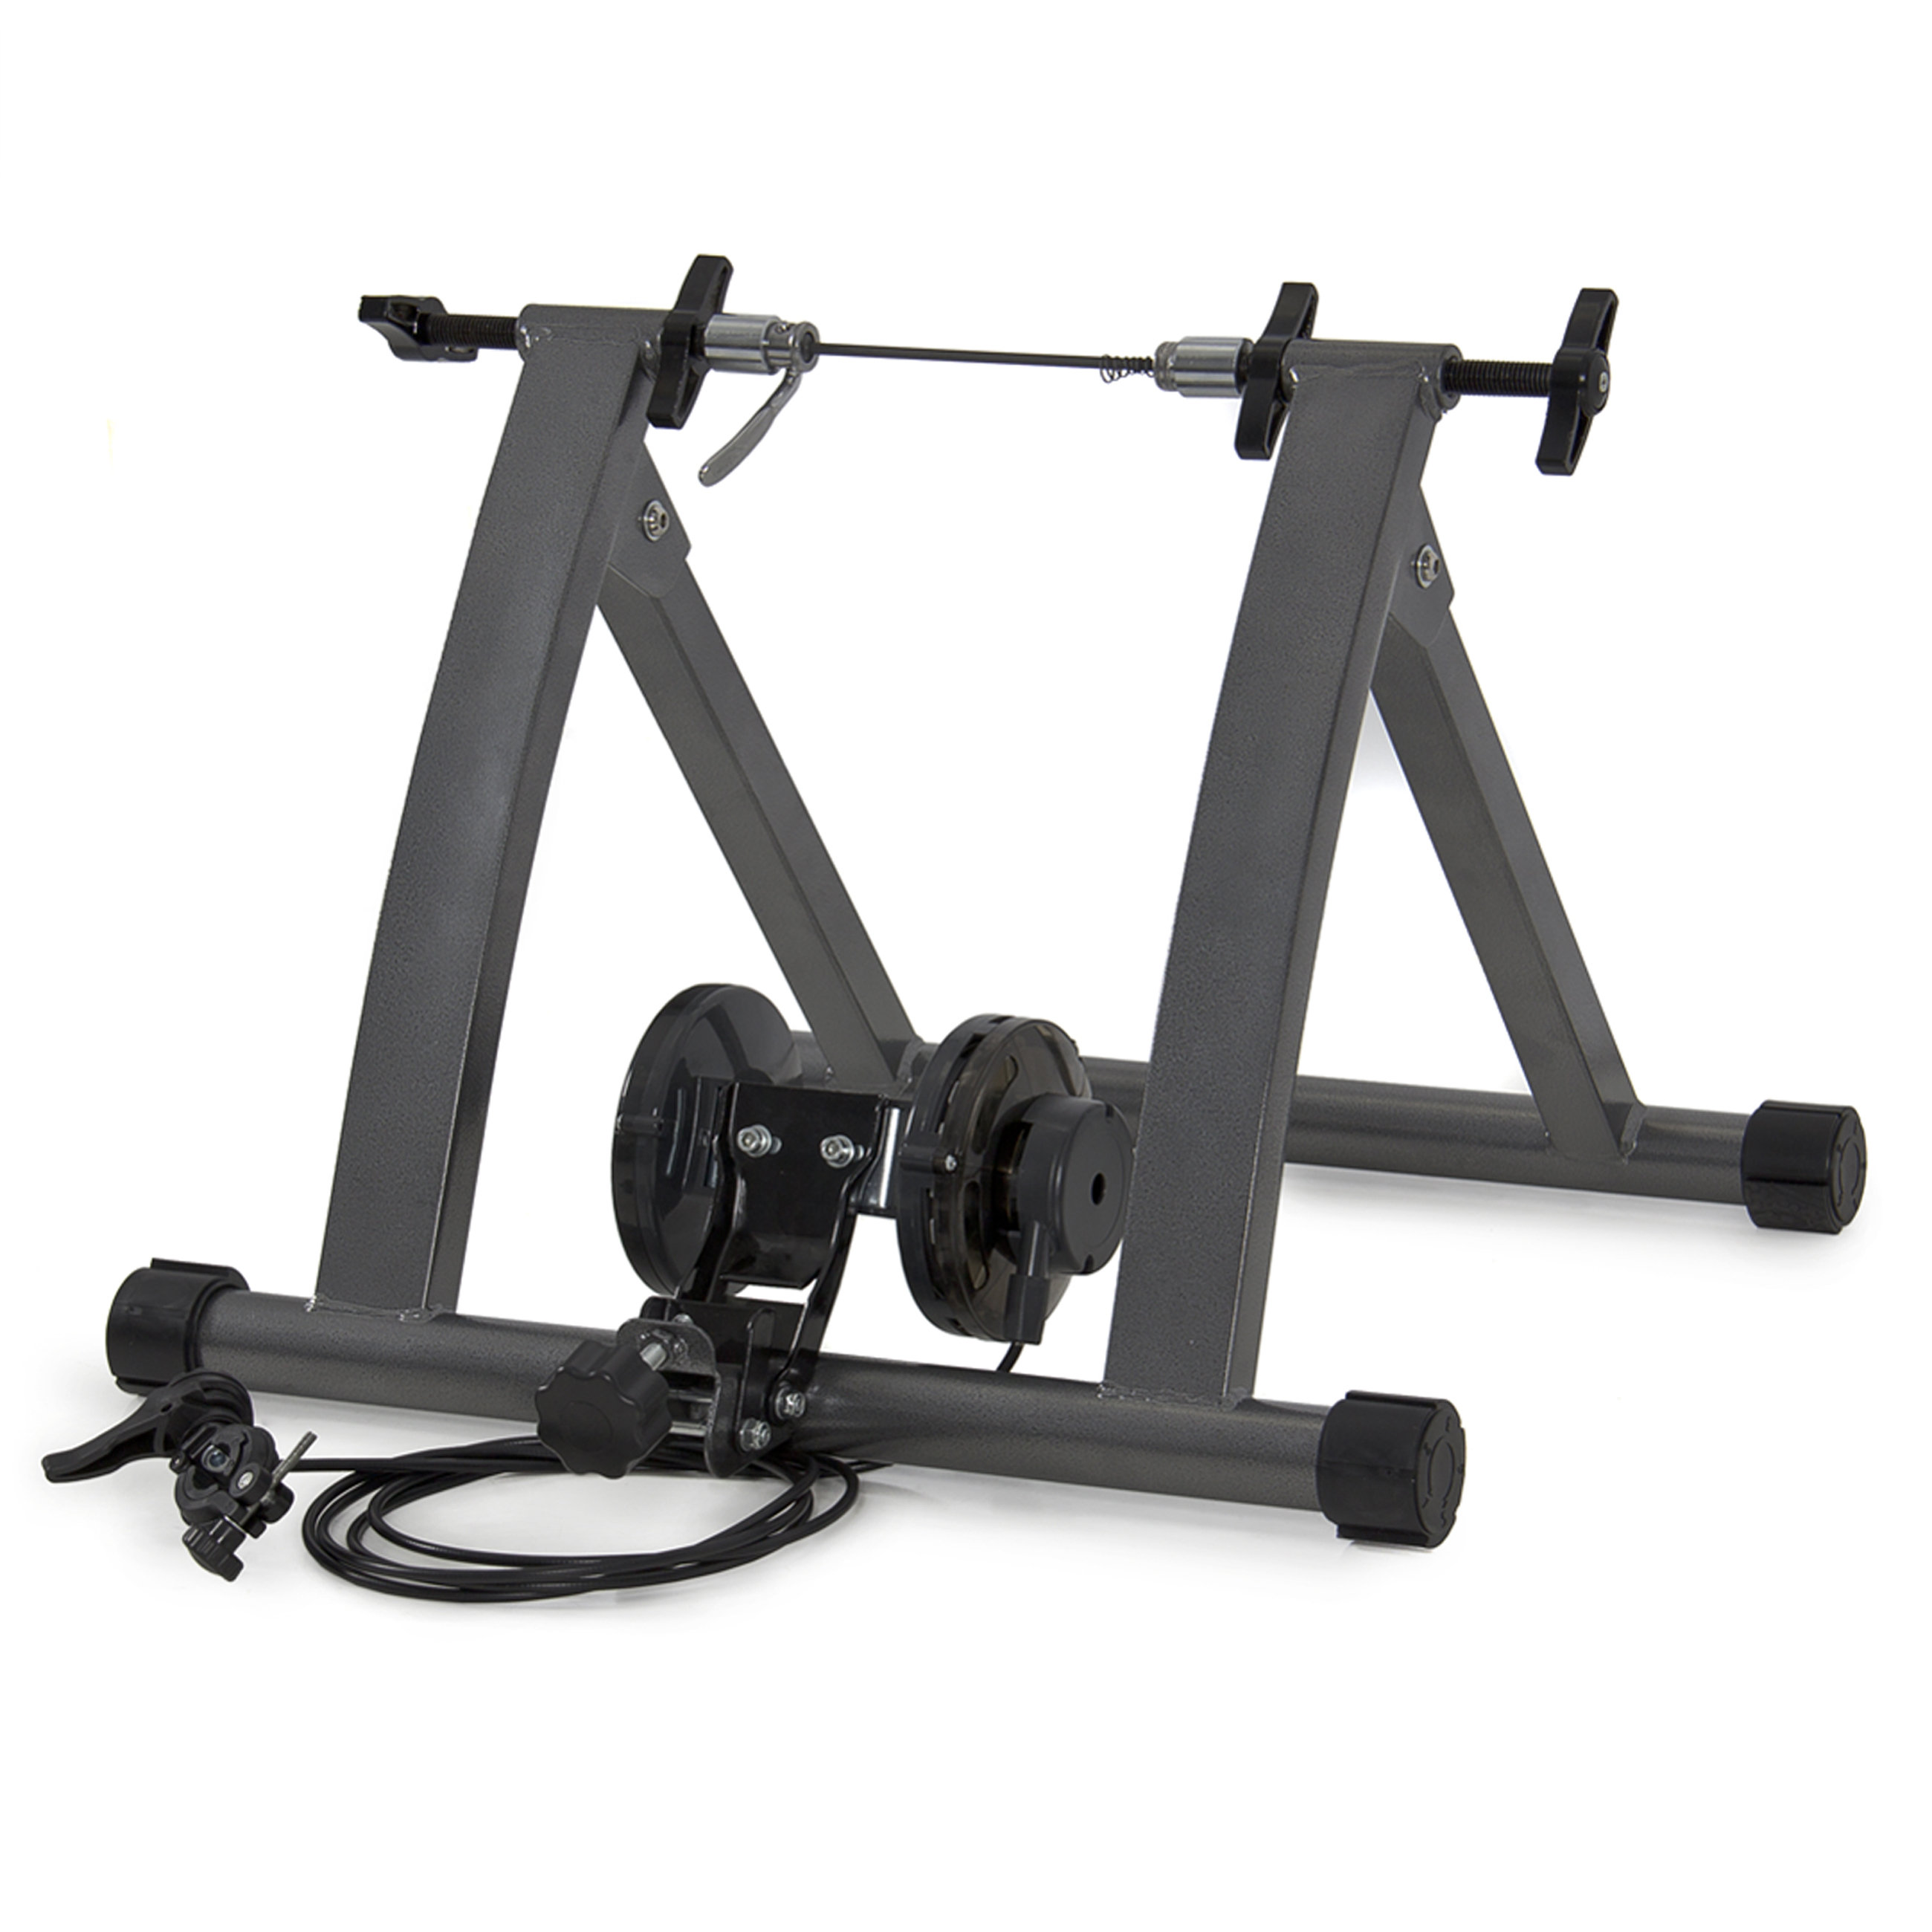 Best Choice Products New Indoor Exercise Bike Bicycle Trainer Stand W/ 5 Levels Resistance Stationary